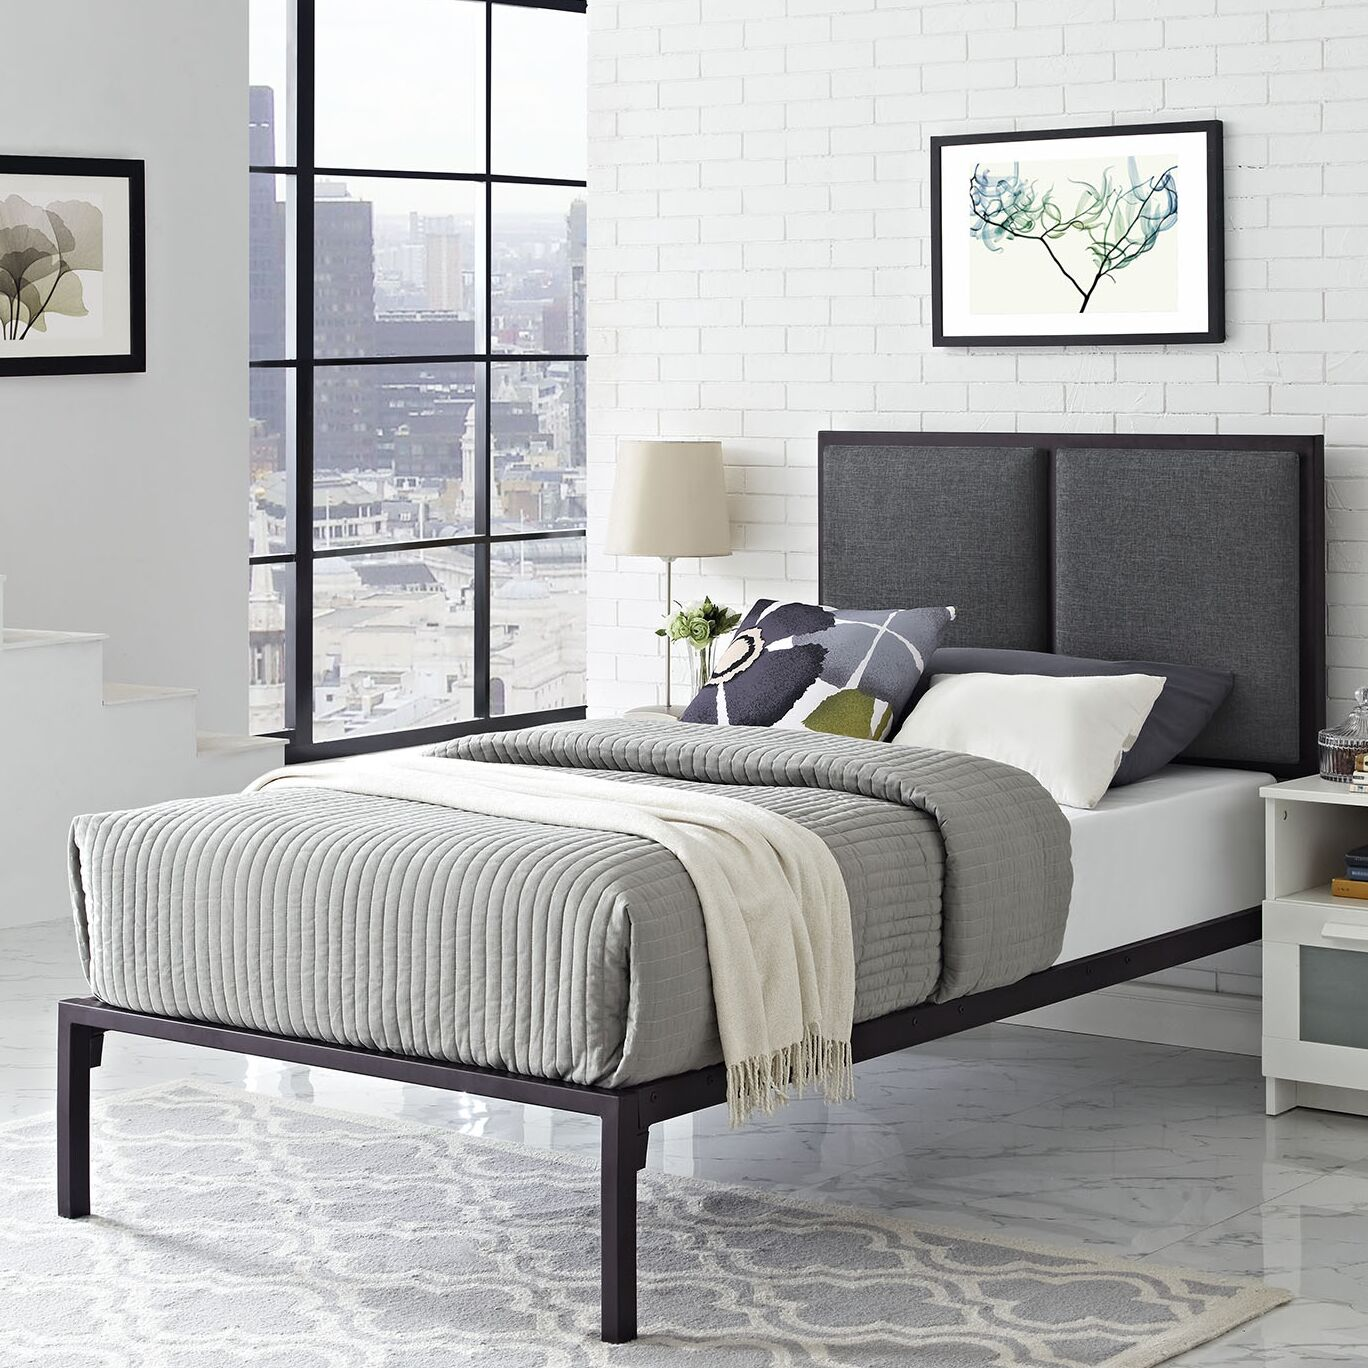 Della Fabric Upholstered Platform Bed Frame Color: White, Headboard Color: Azure, Size: Queen